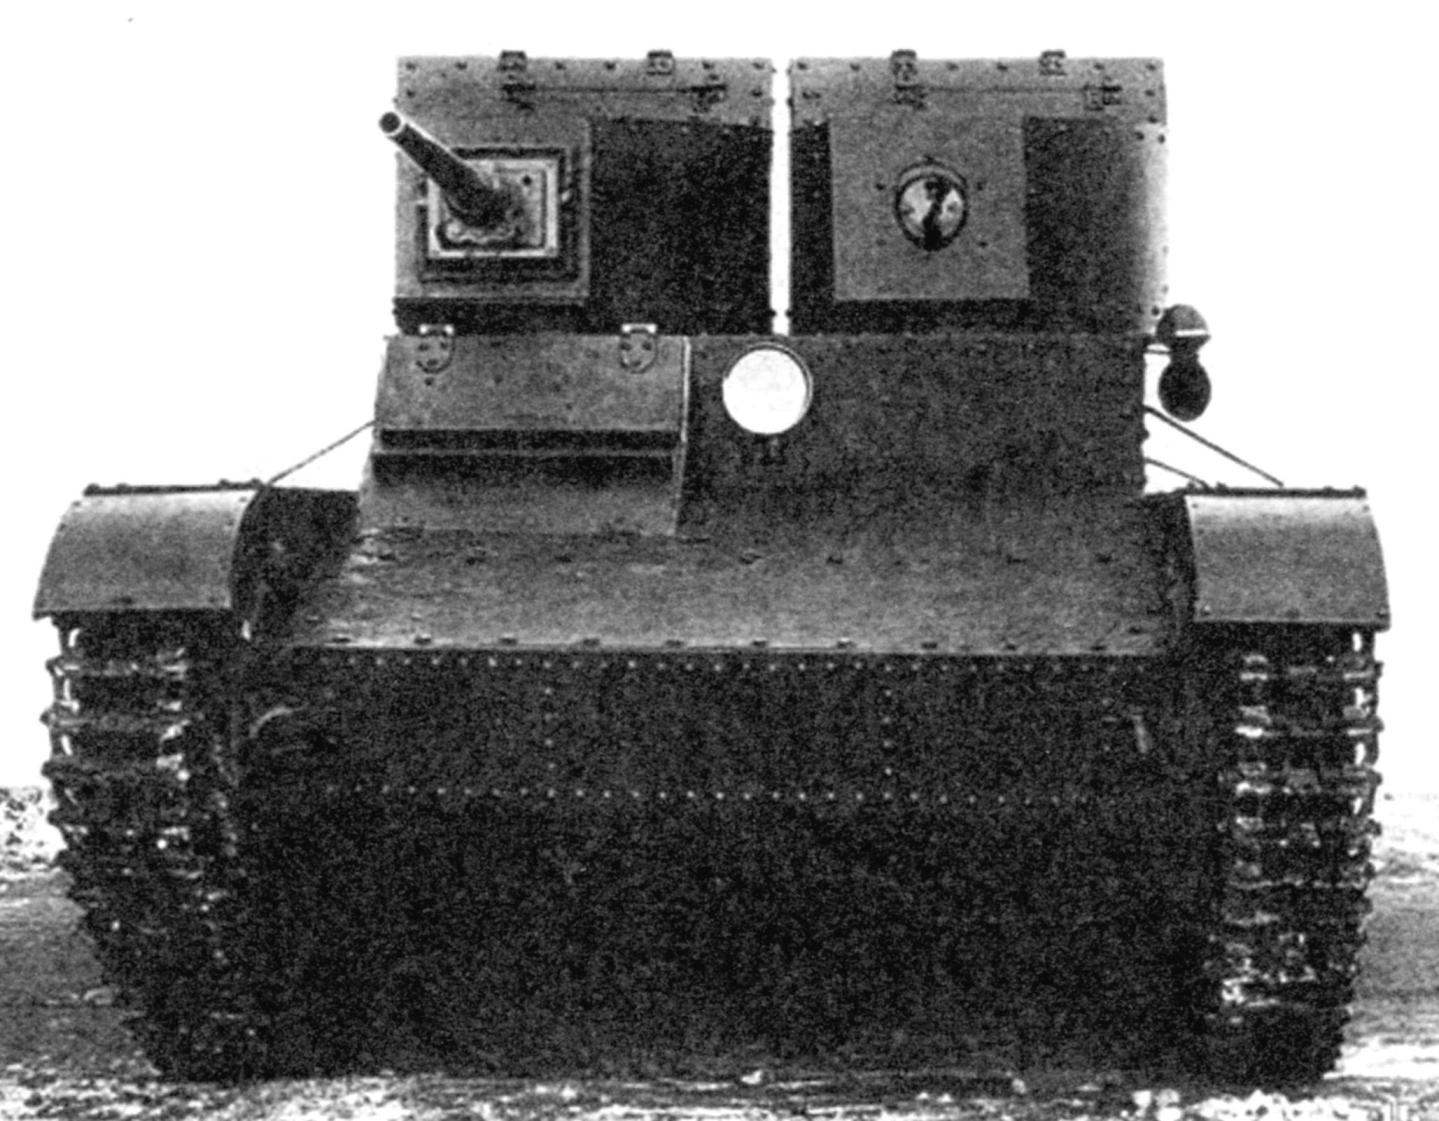 Cannon and machine-gun tank with a 37 mm cannon B-3 and 7.62-mm machine gun DT